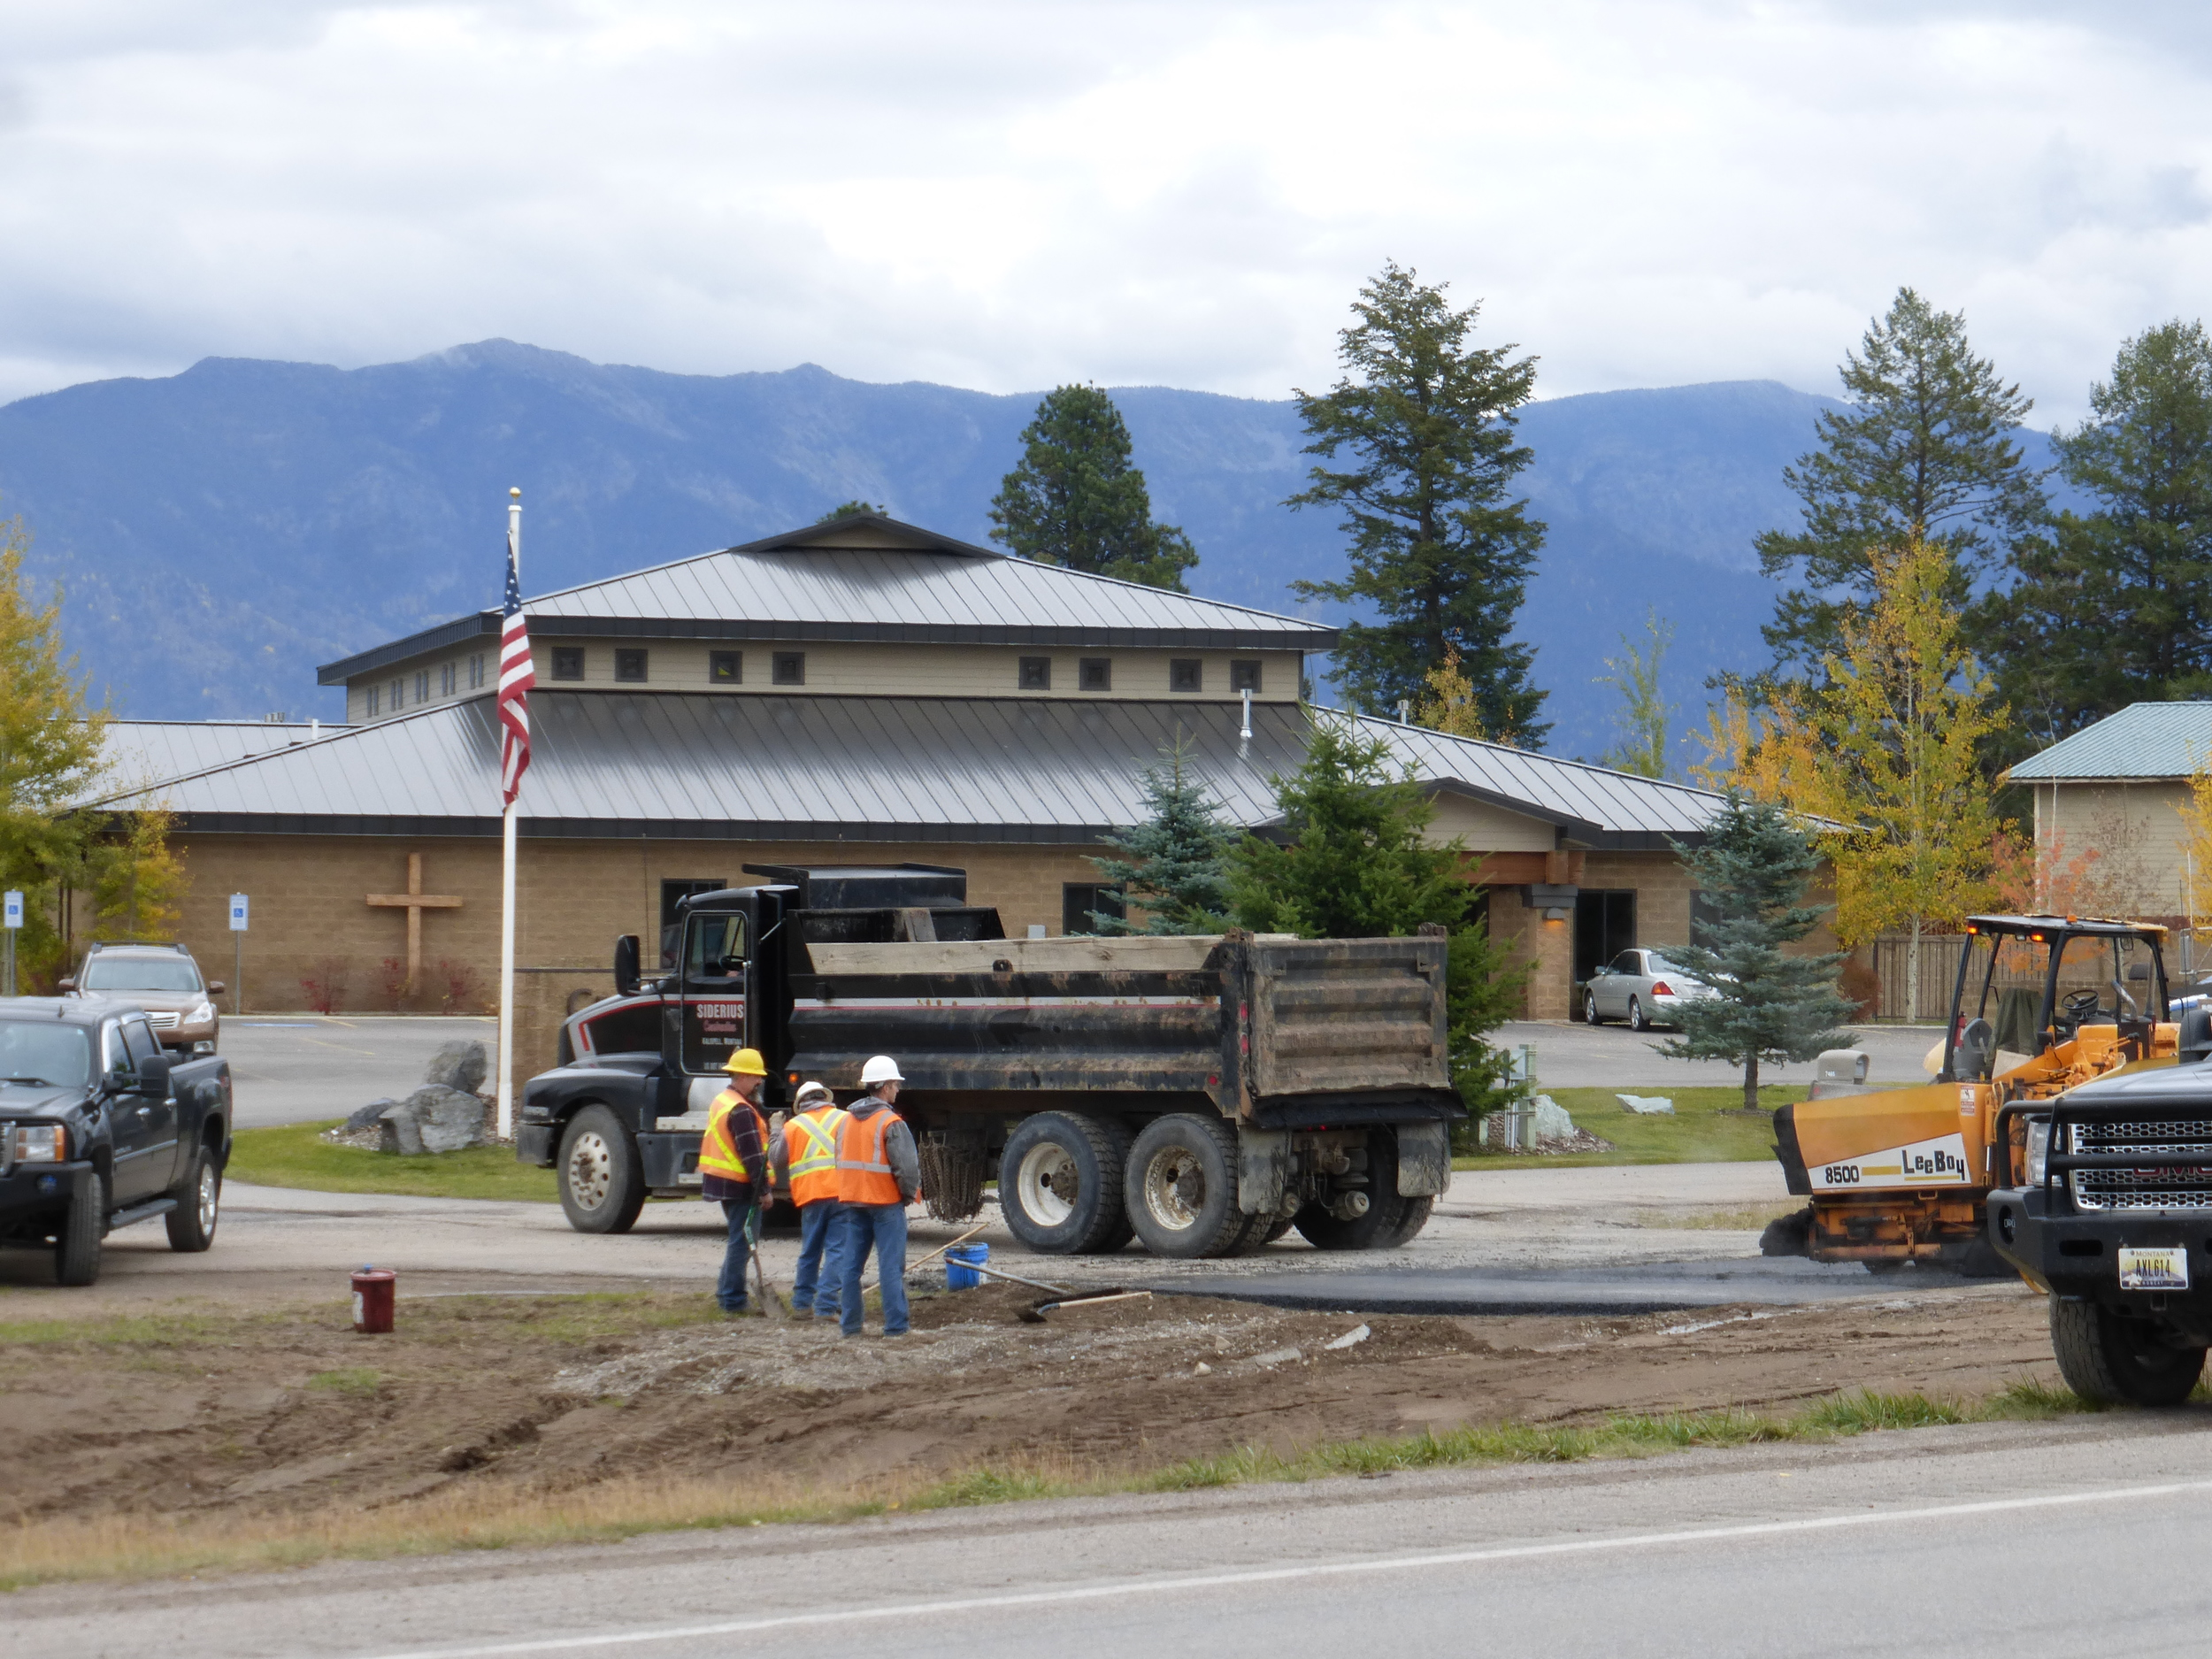 Montana DOT putting taxpayer money to good use, AKA how many people does it take to pave a driveway (there are 2 more on the other side out of view)